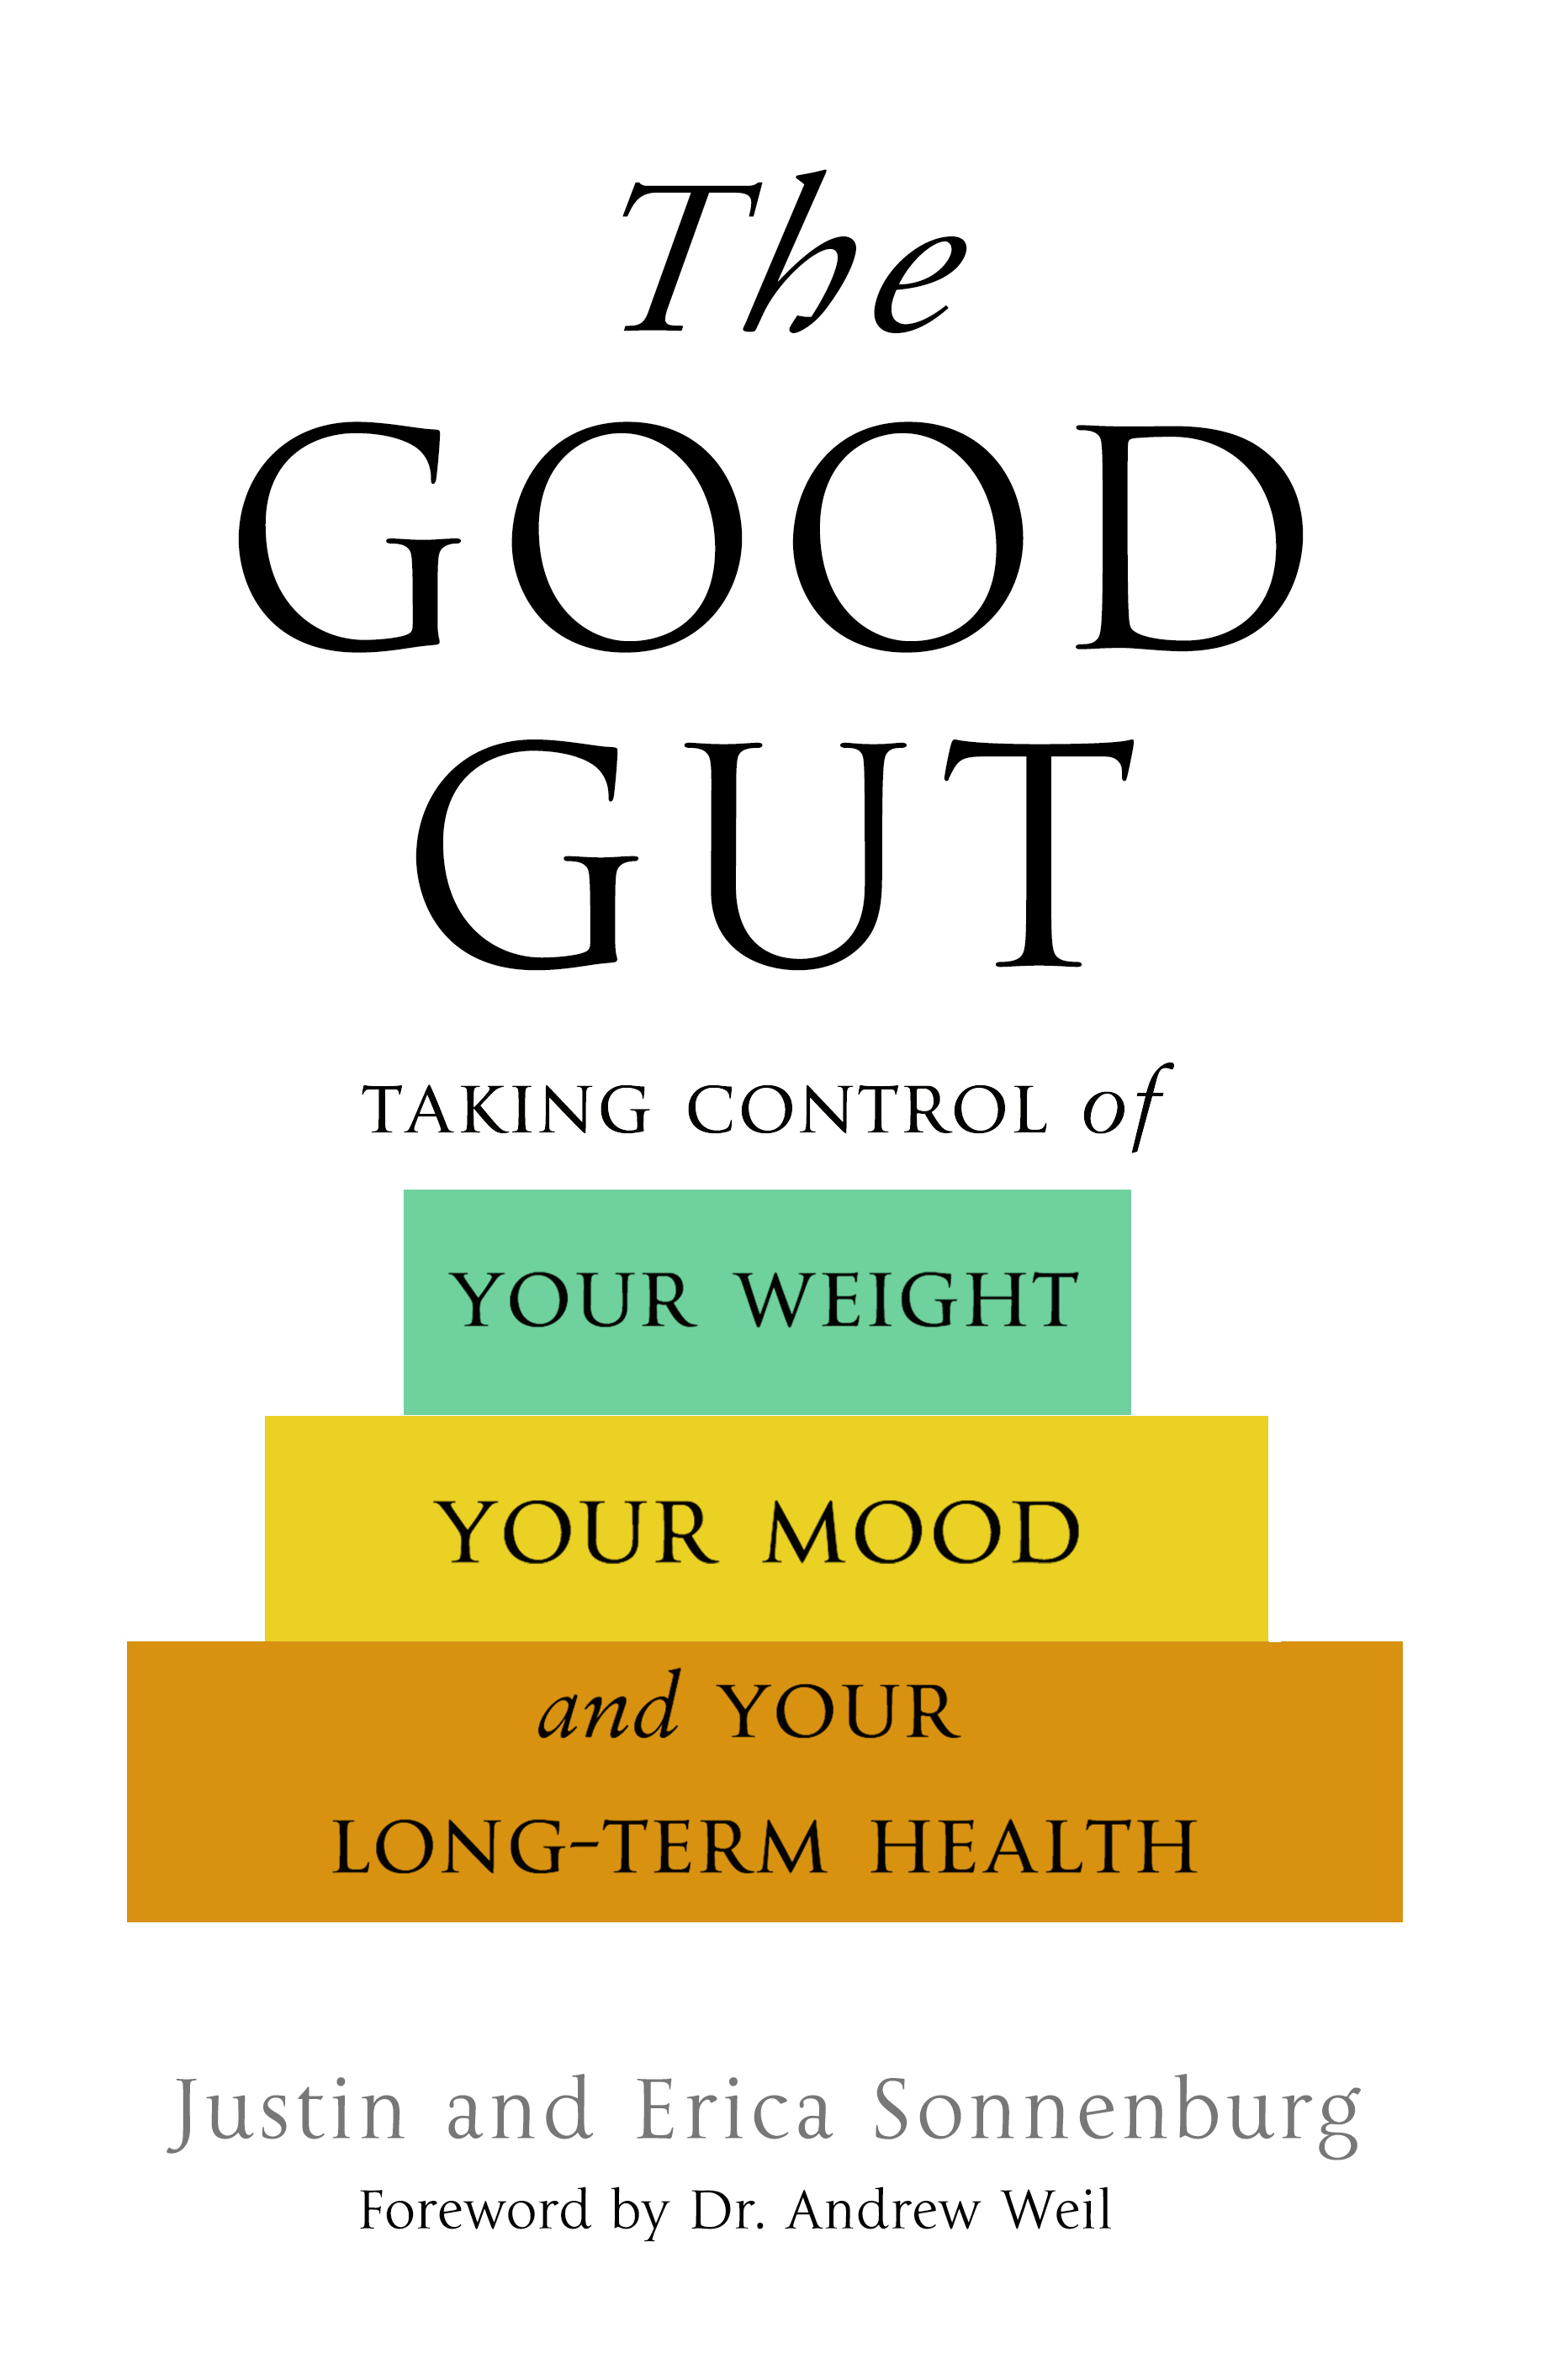 a comprehensive review of the good gut a book by justin and erica sonnenburg